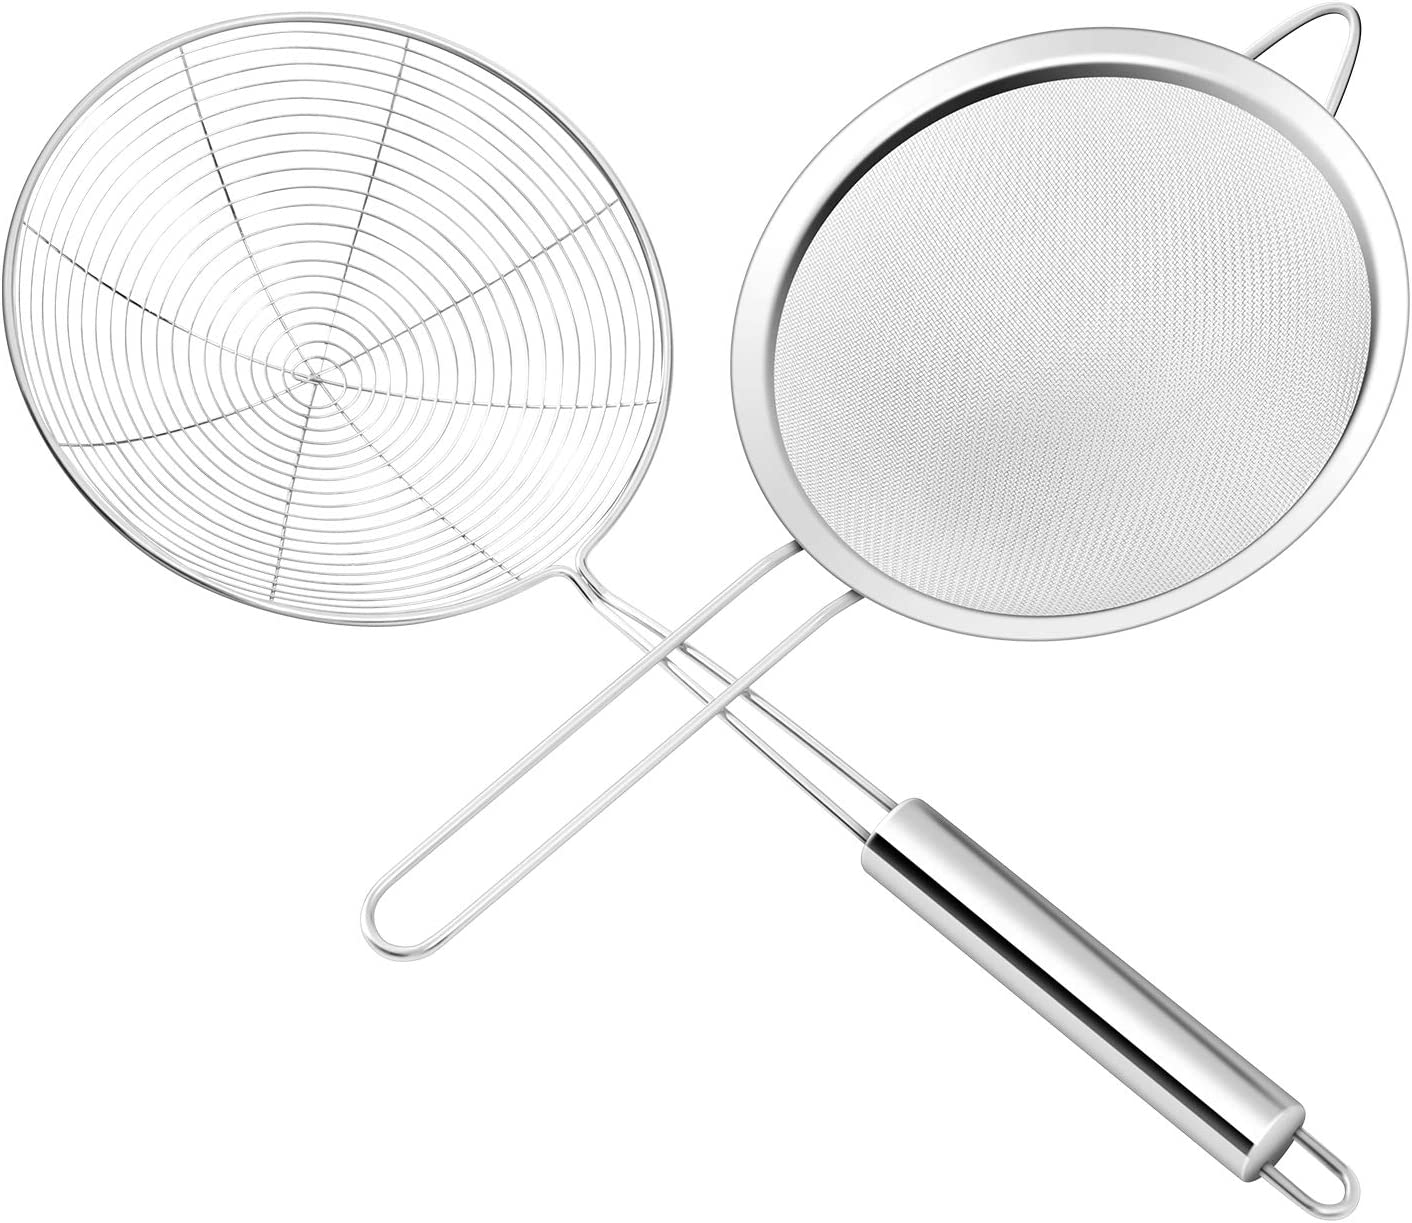 Premium Stainless Steel Fine Mesh food strainer and Spider Strainer Skimmer(diameter 6.7inch, 6.6inch), Skimmer Spoon for Kitchen with Sturdy Handle for Frying and Cooking, Pasta Strainer